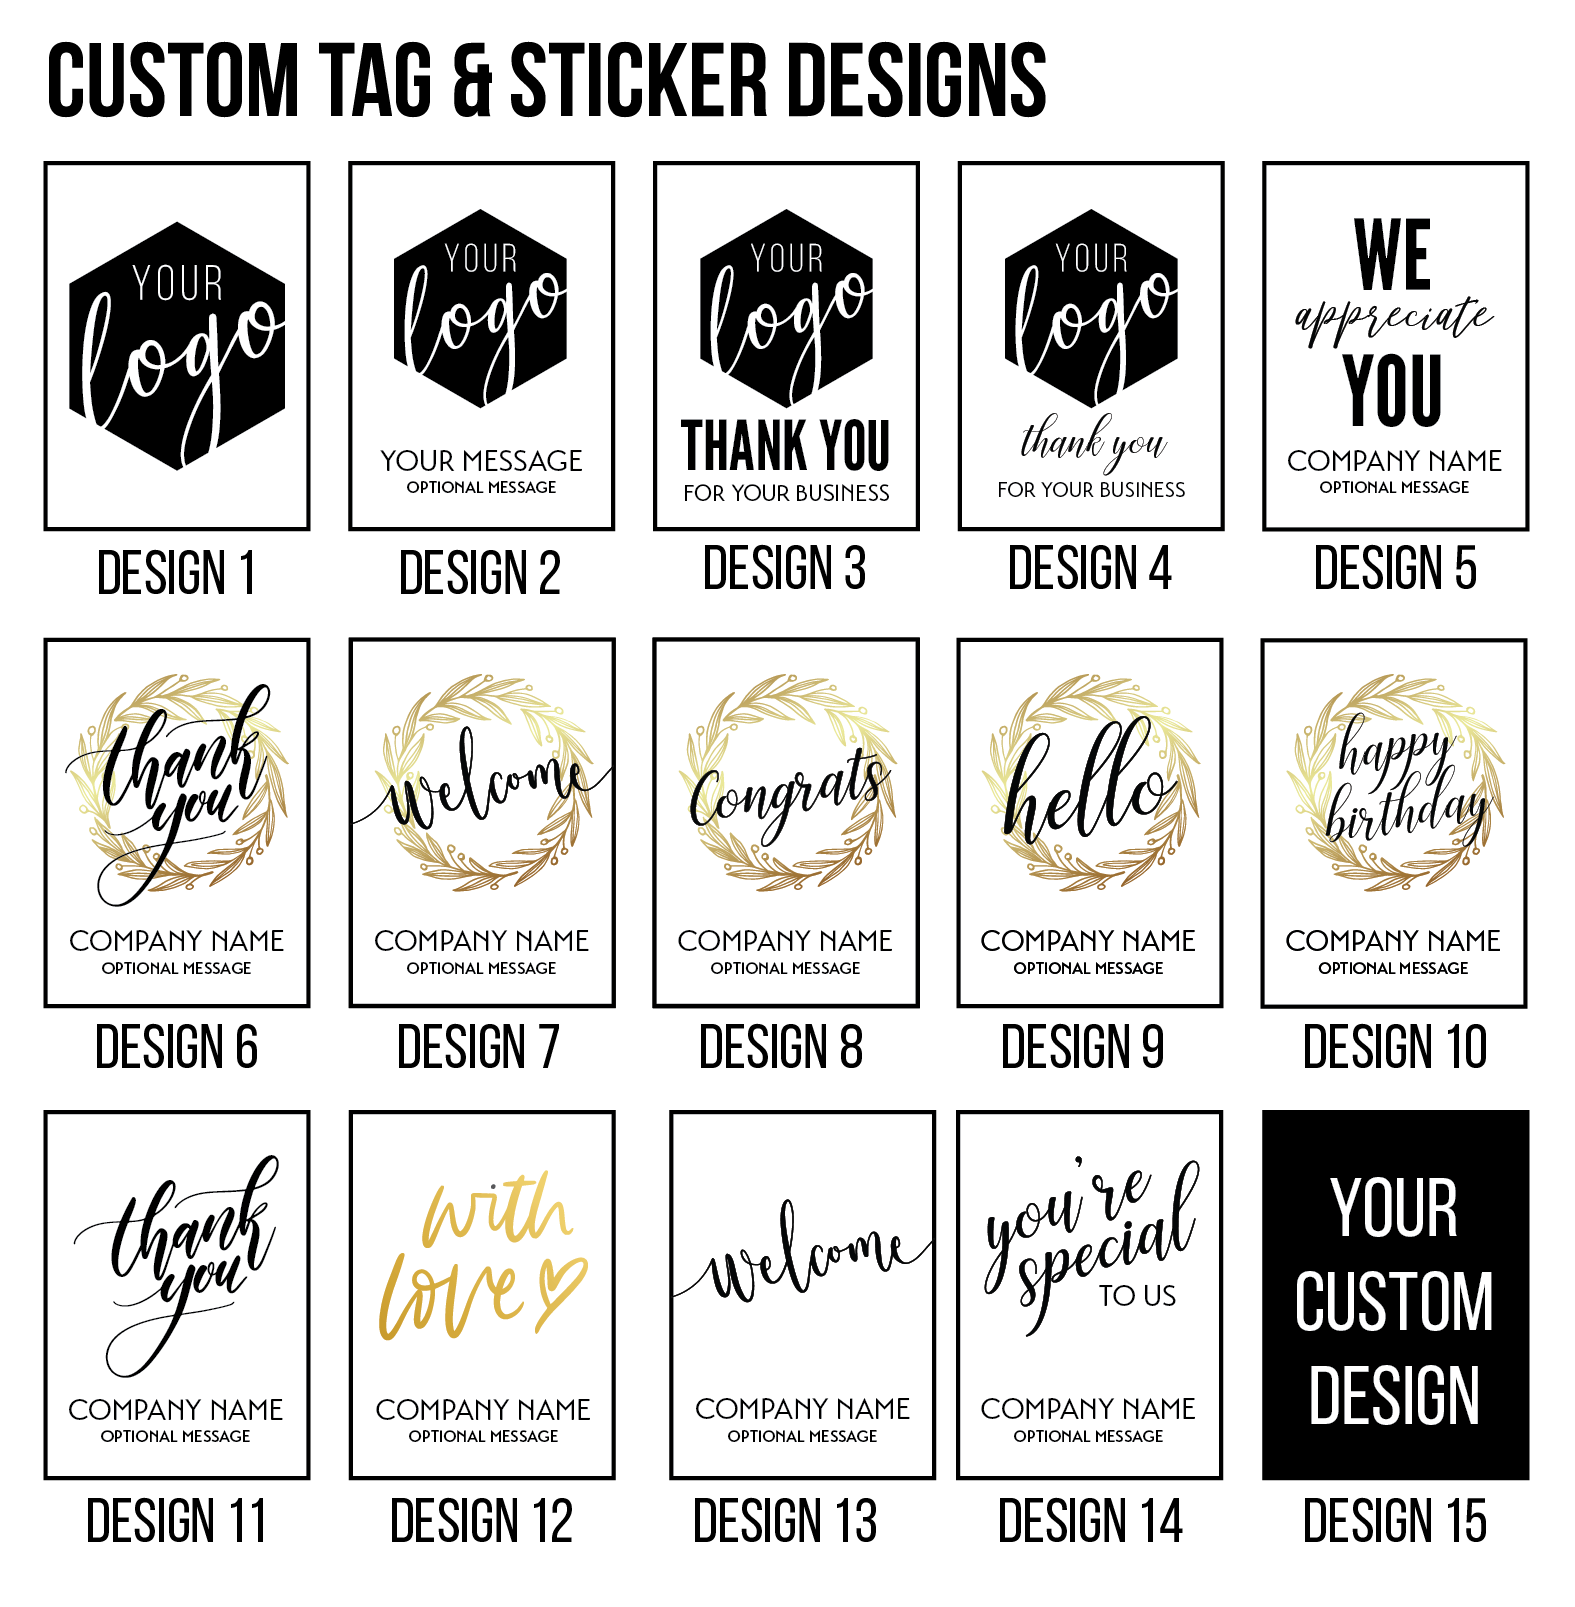 Gourmet Wedding Gifts Custom Corporate Personalization design and colors 2019